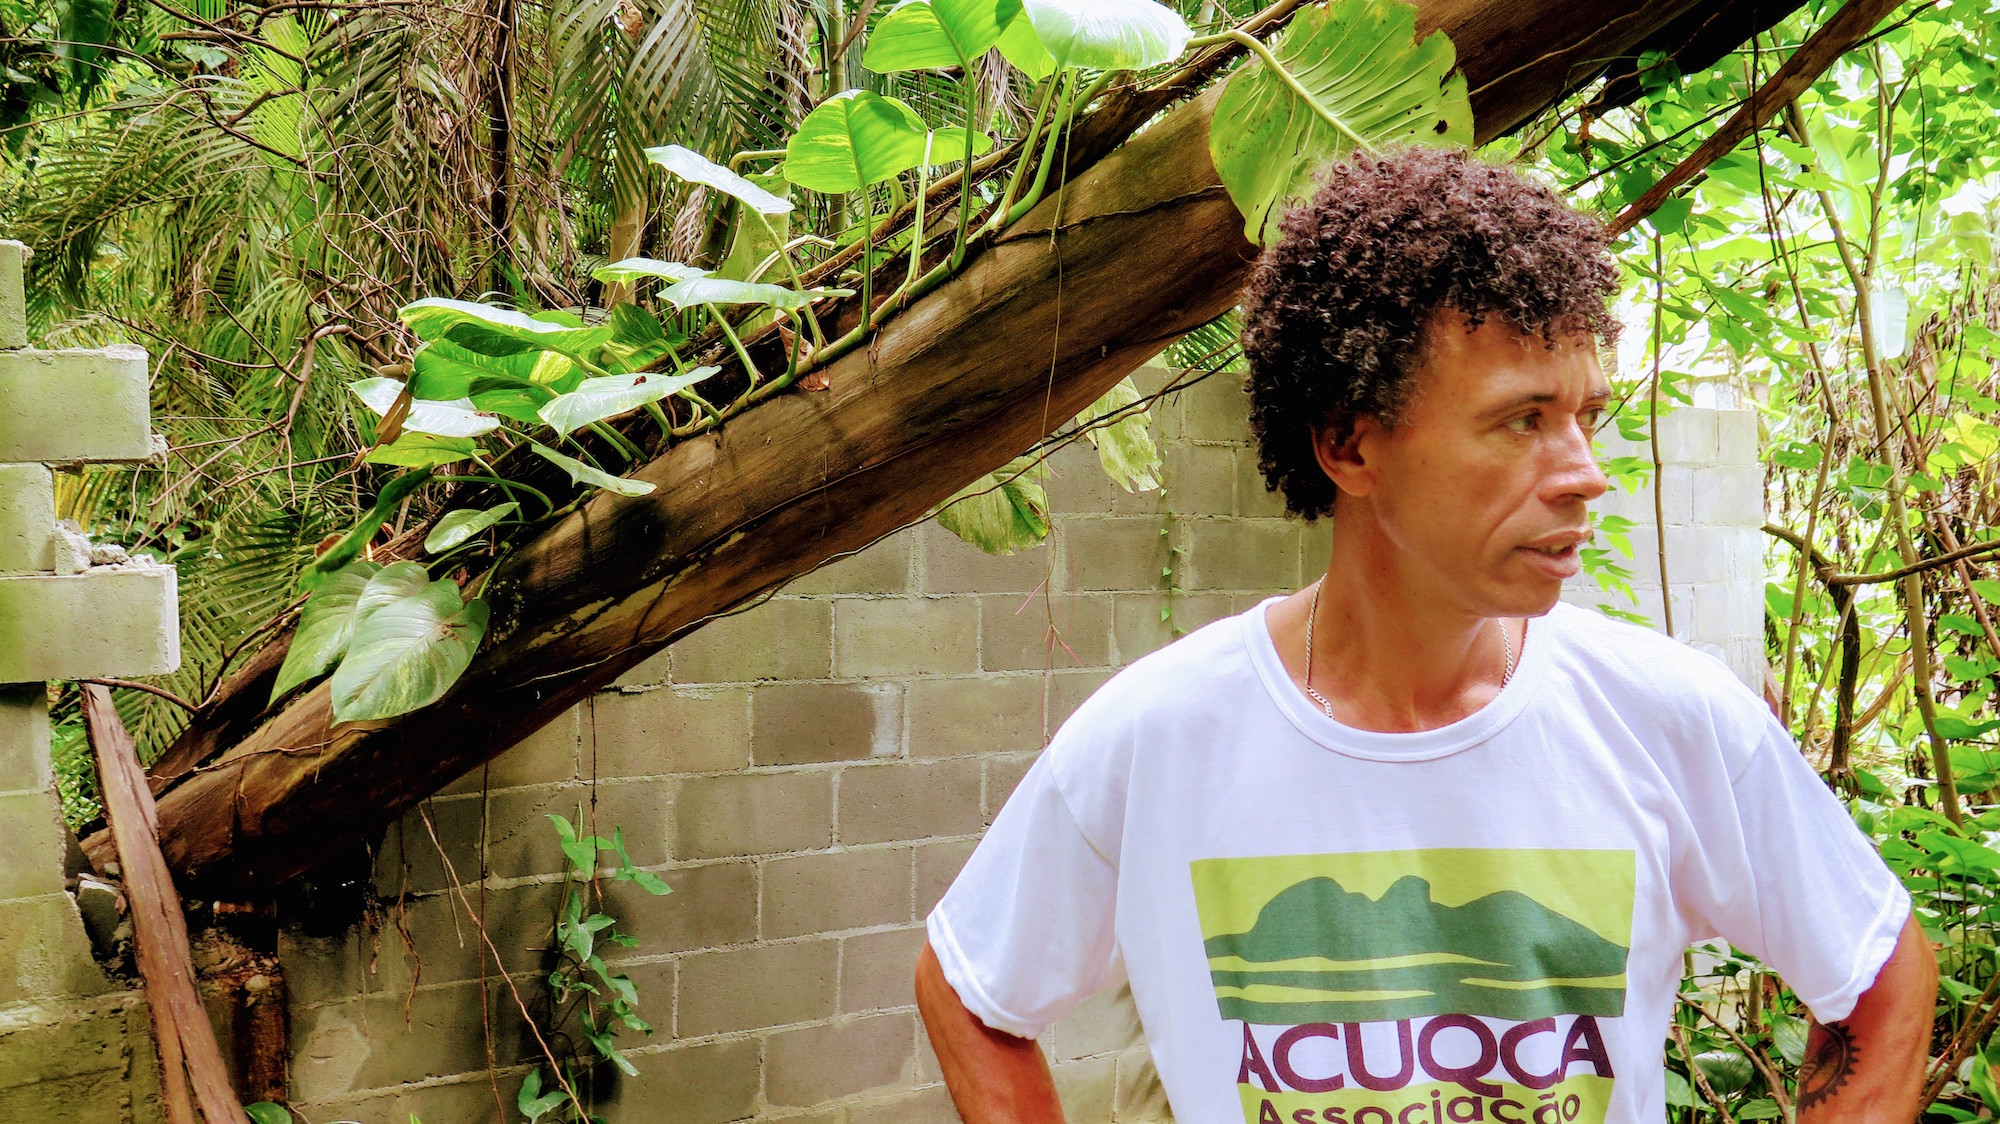 Adilson Almeida next to the wall constructed by the condominium, at a spot where a tree had fallen through